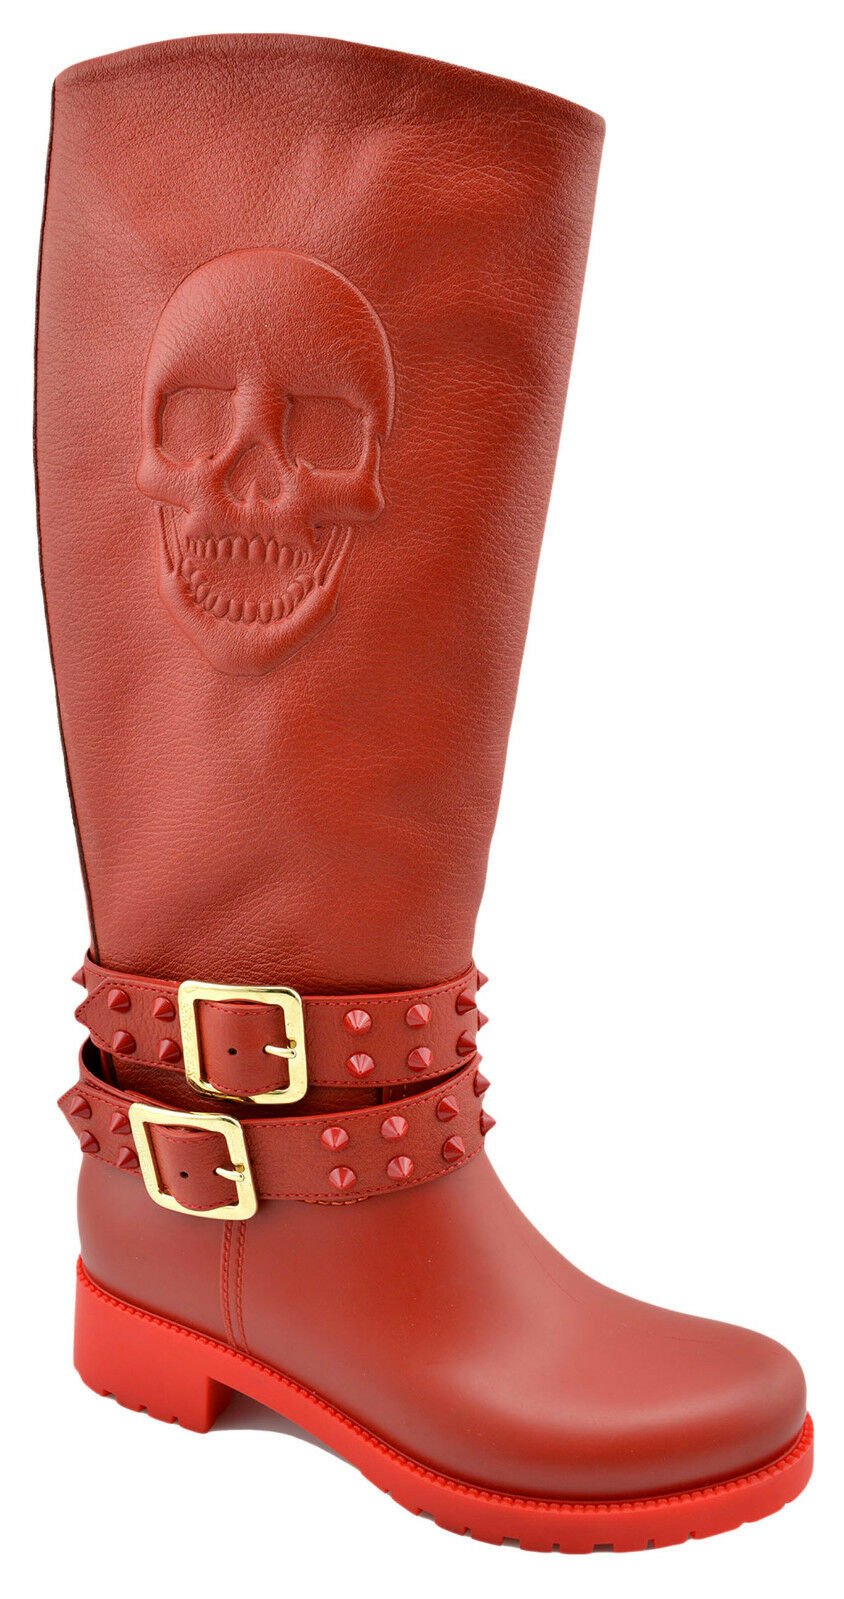 950 PHILIPP PLEIN rouge Rubber Leather AFTER YOU Skull Rainproof Knee bottes 39 9